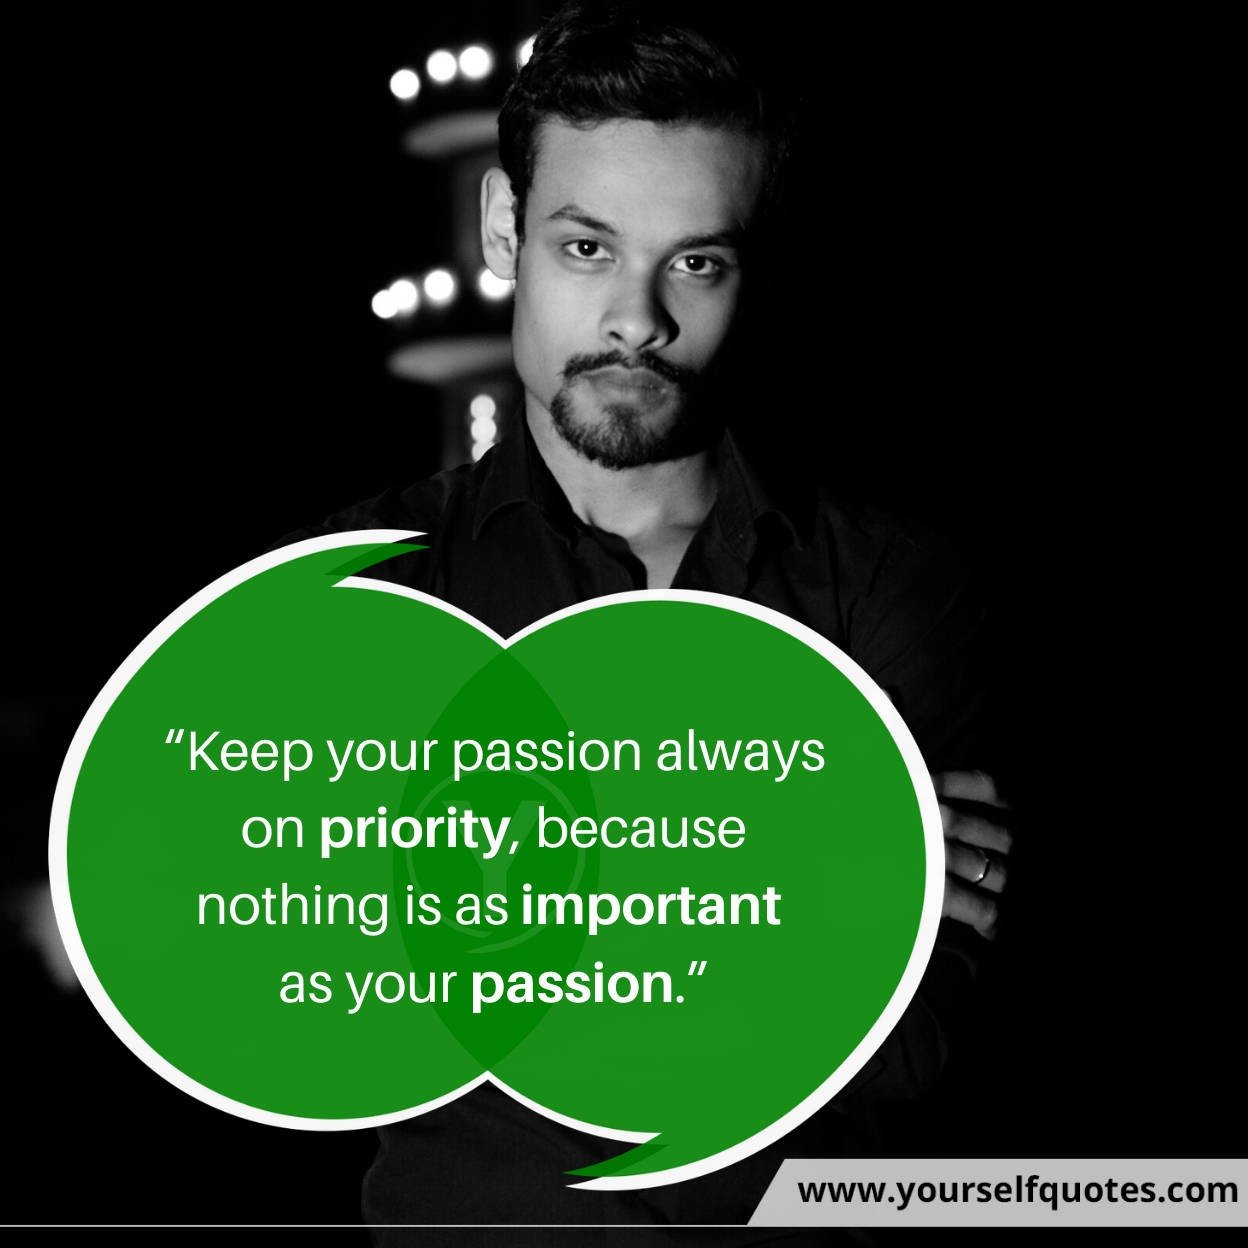 Best Quotes on Passion Images